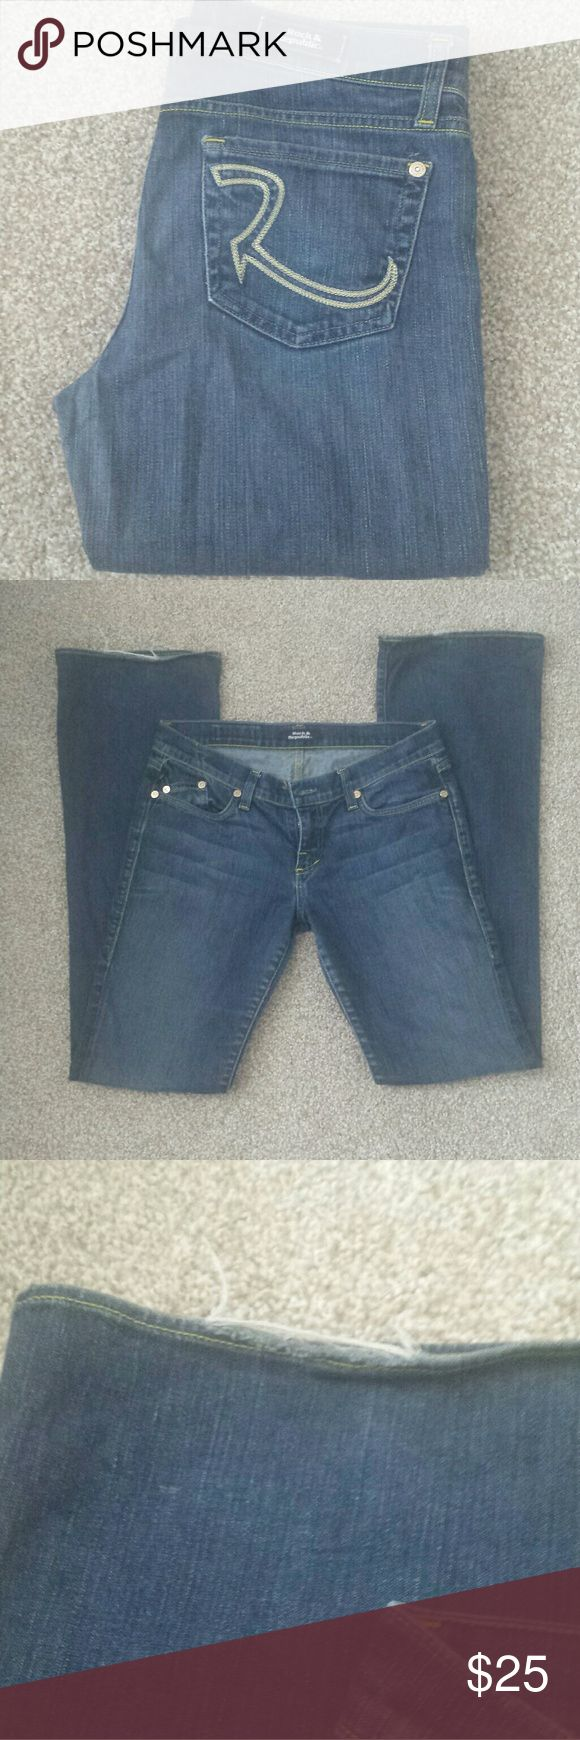 """Rock & Republic Jeans Very cute! 98% Cotton, 2% Spandex. Inseam is about 35 1/2"""", Lowrise: about 8"""". Please feel free to make a reasonable offer! Rock & Republic Jeans"""